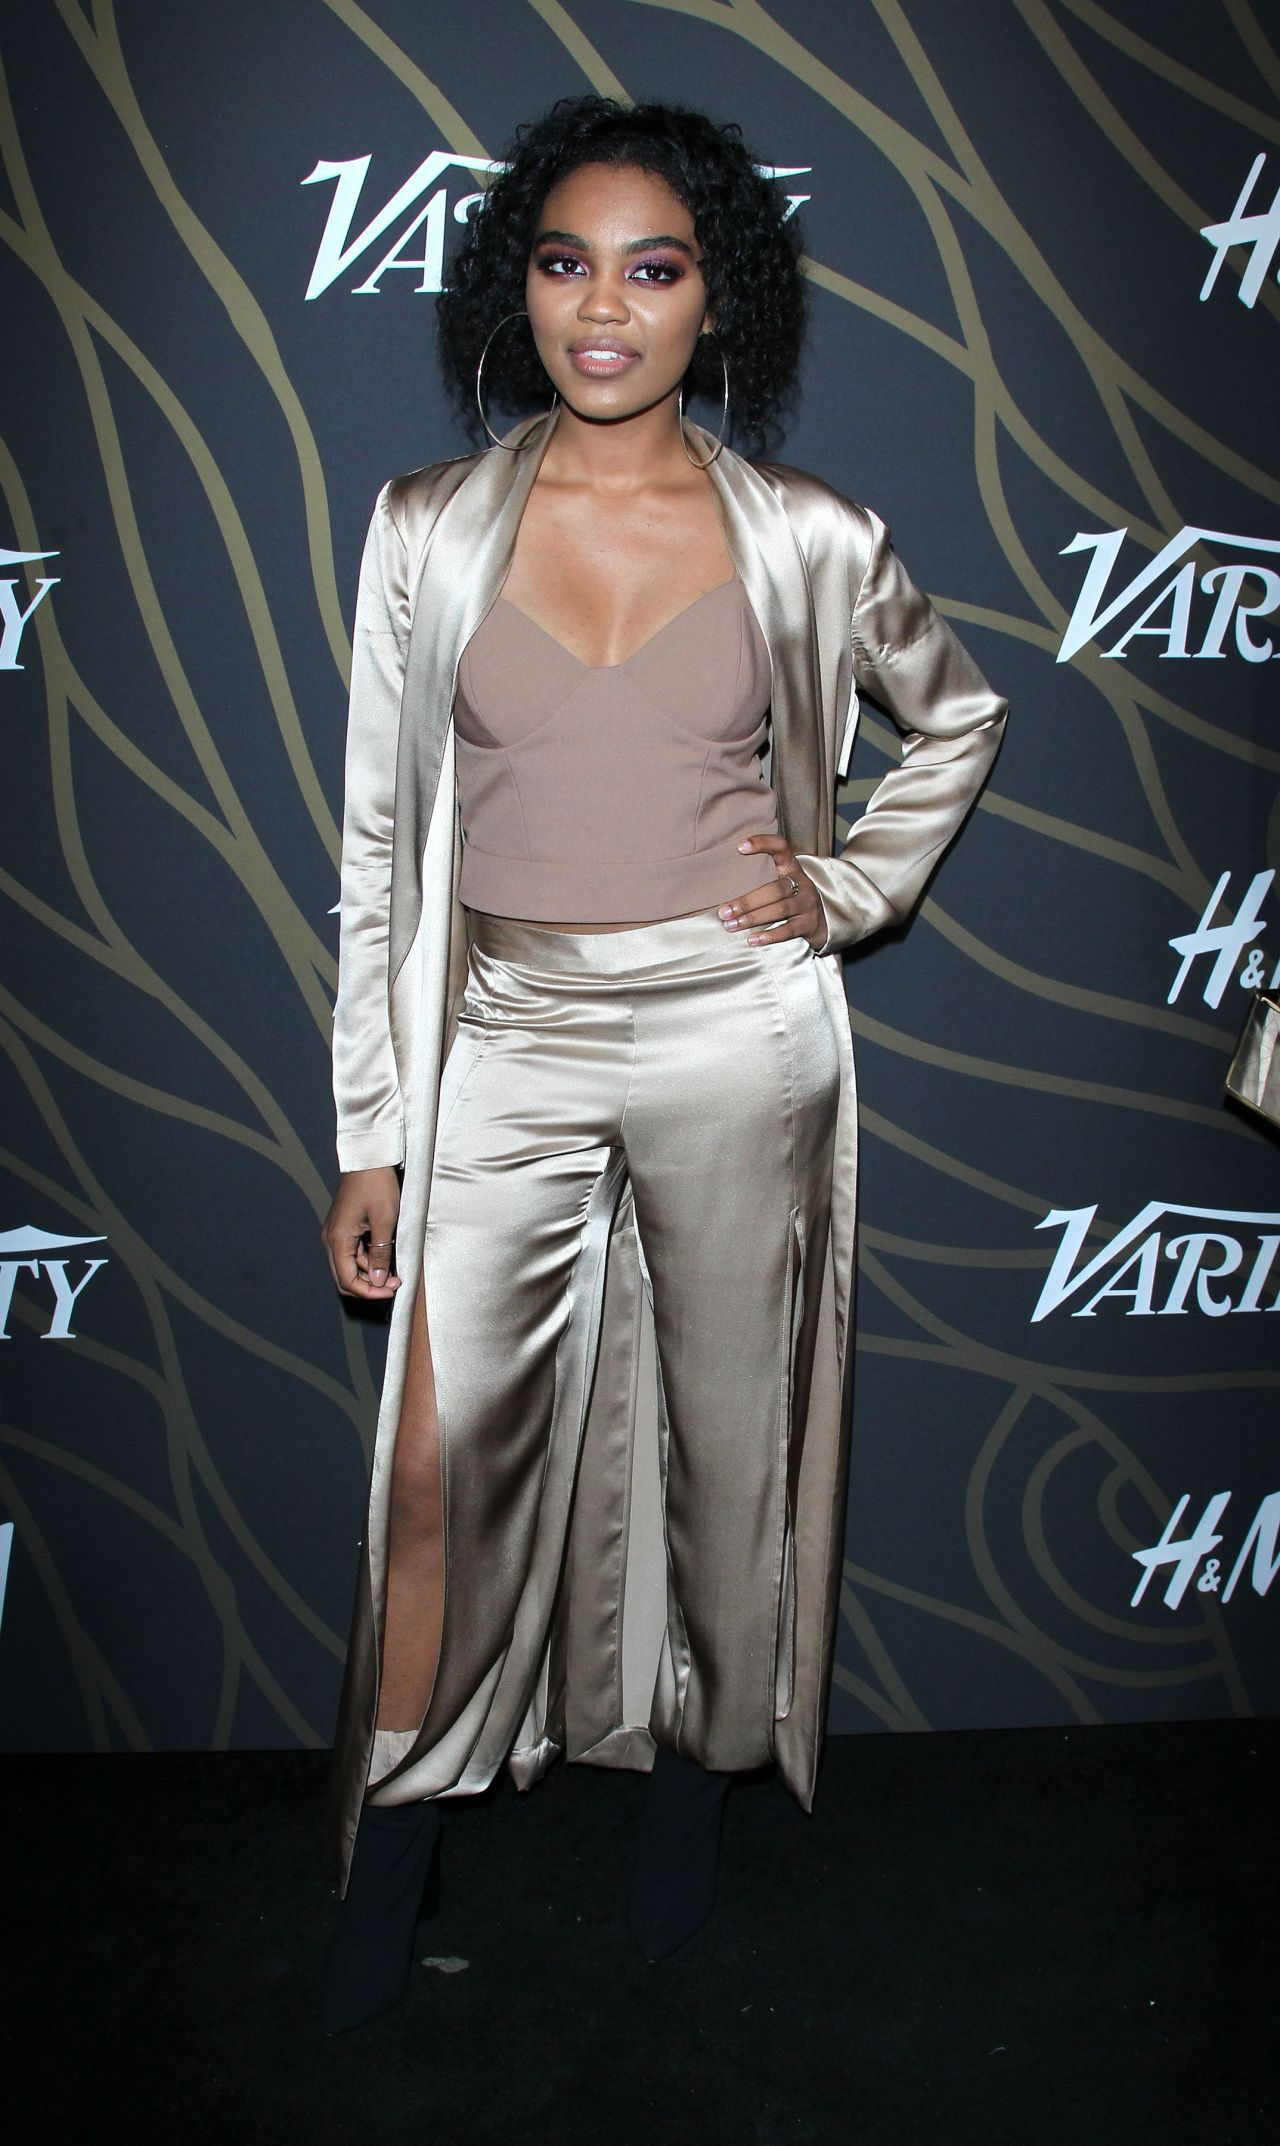 China Anne Mcclain Variety Power Of Young Hollywood In